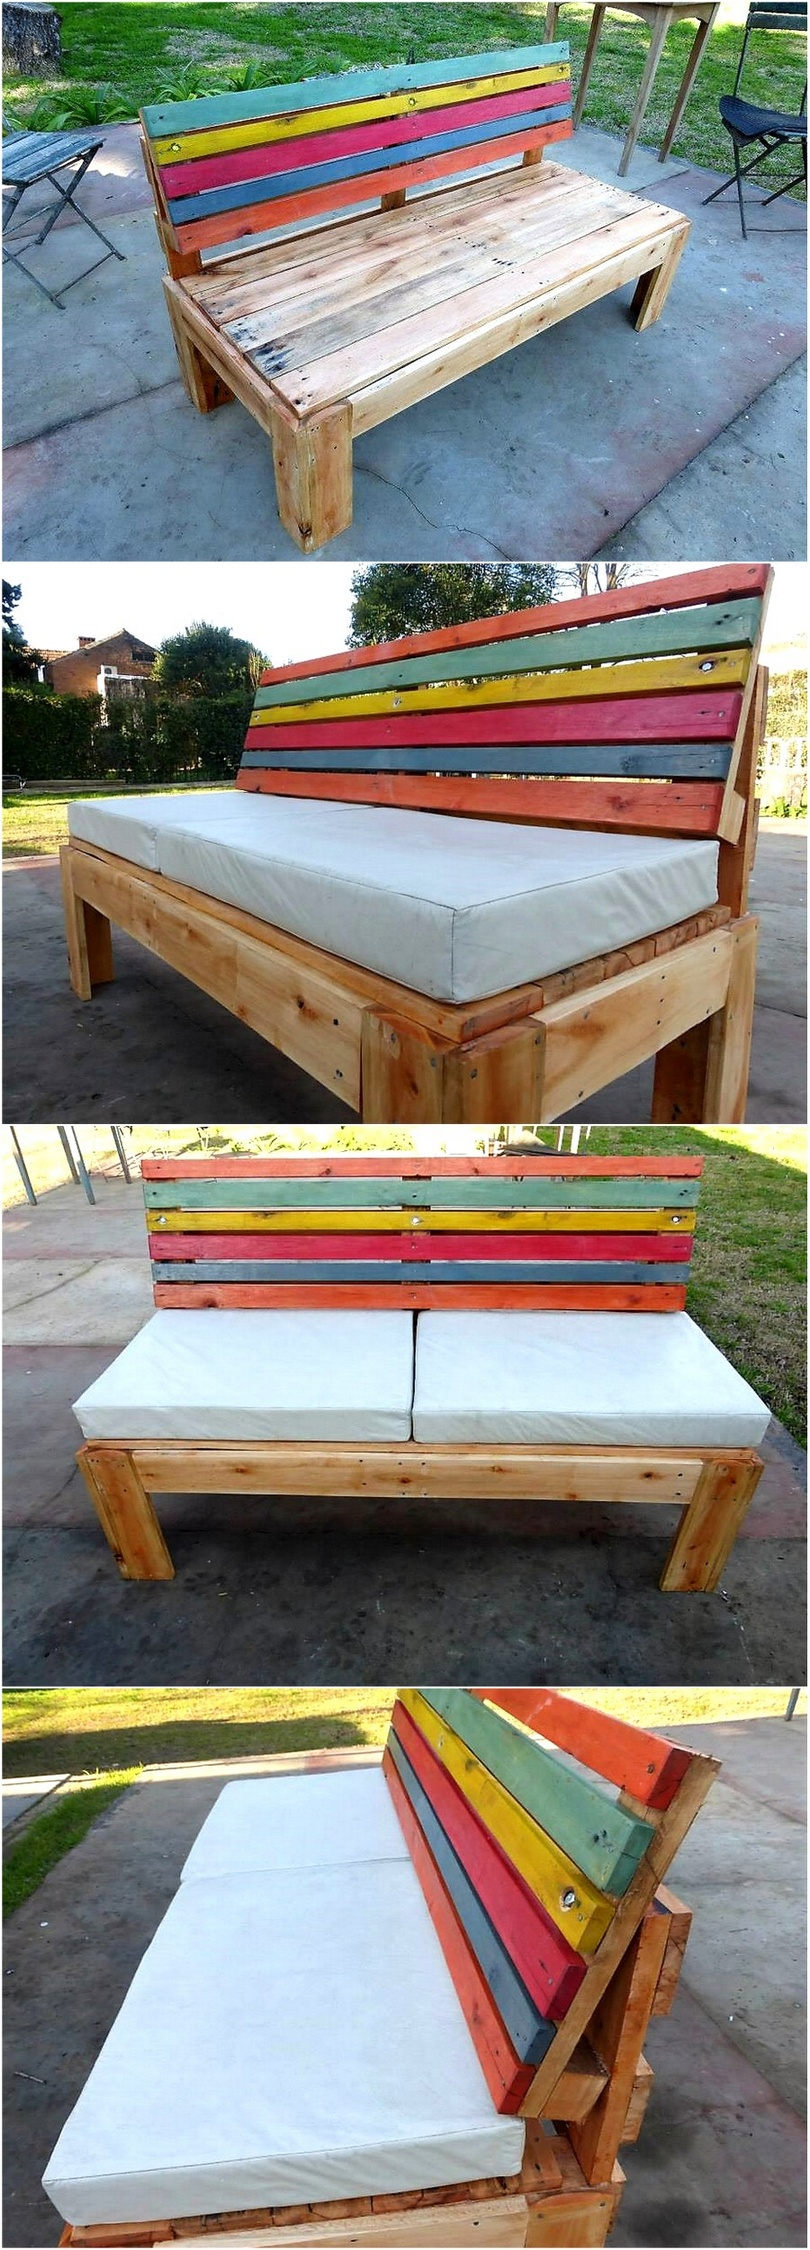 recycled-pallet-garden-bench